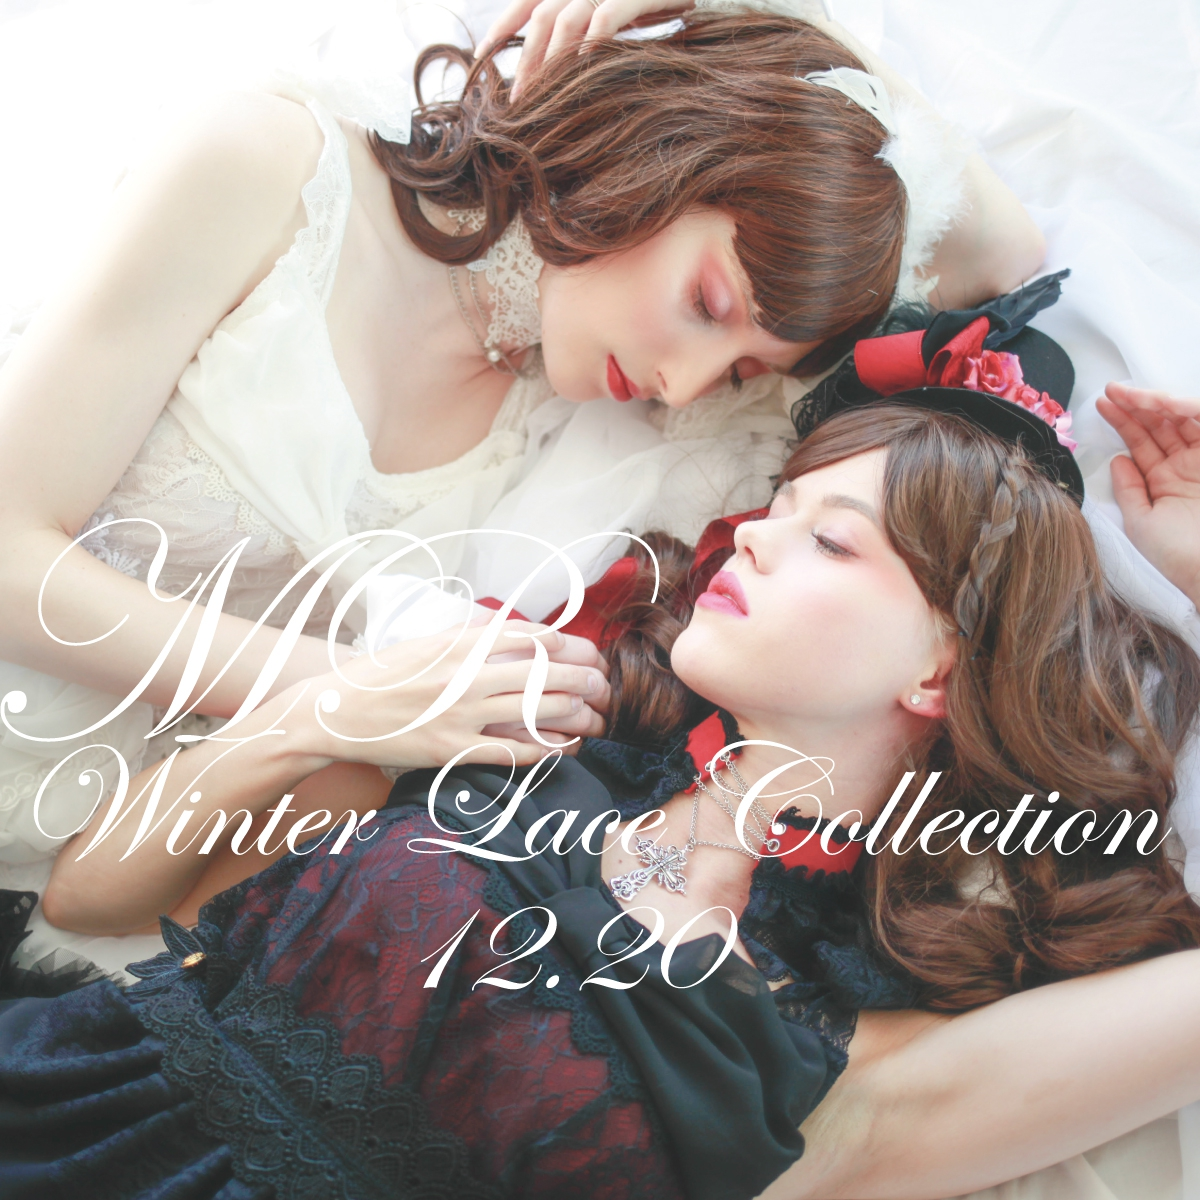 1220 Winter Lace Collection